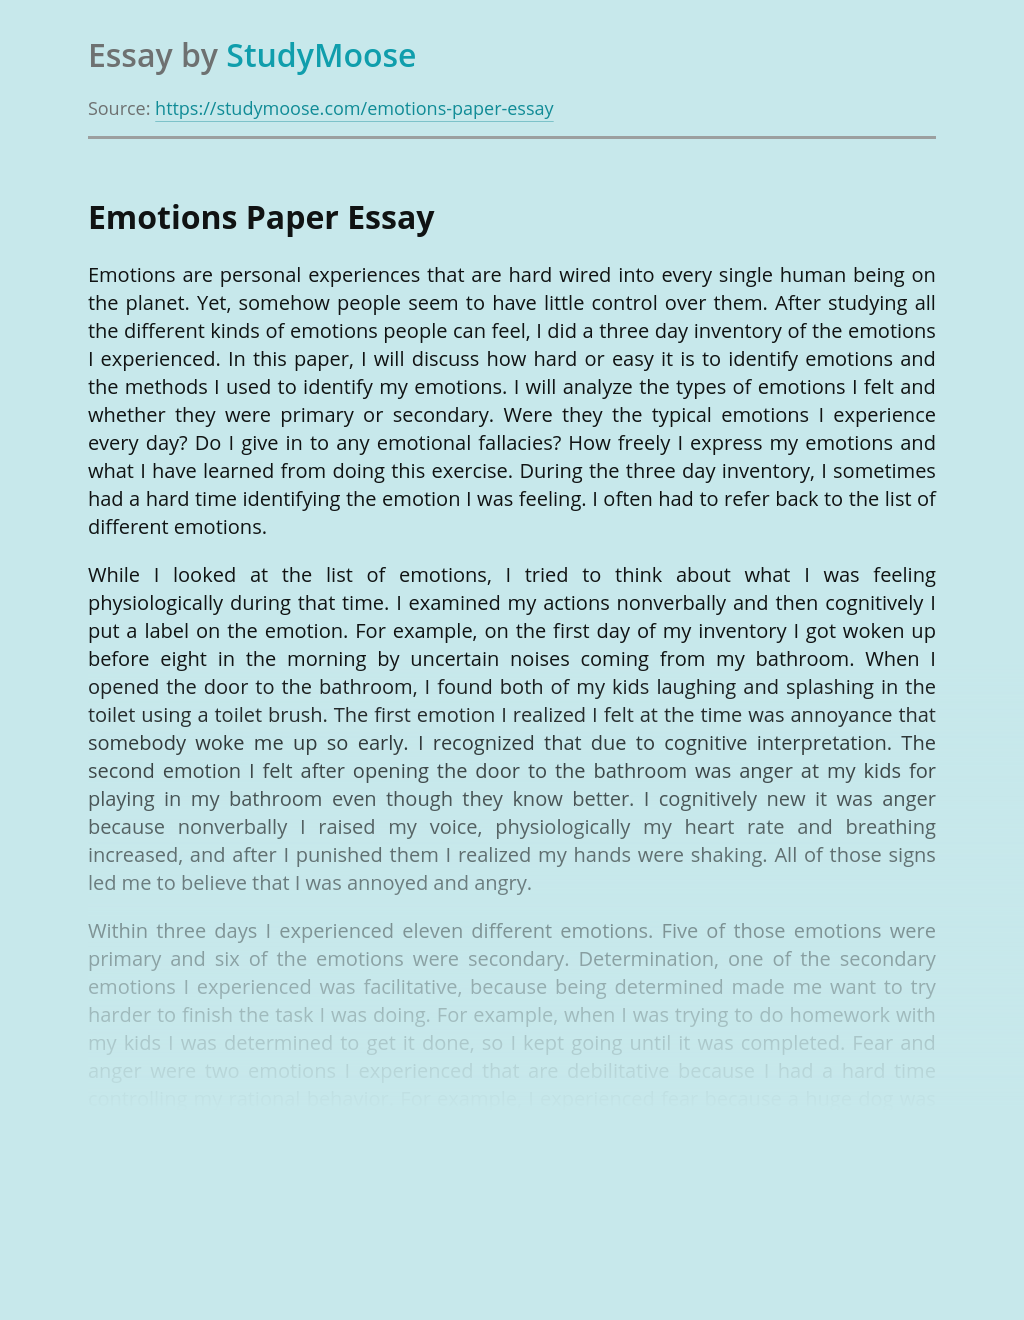 Emotions Paper